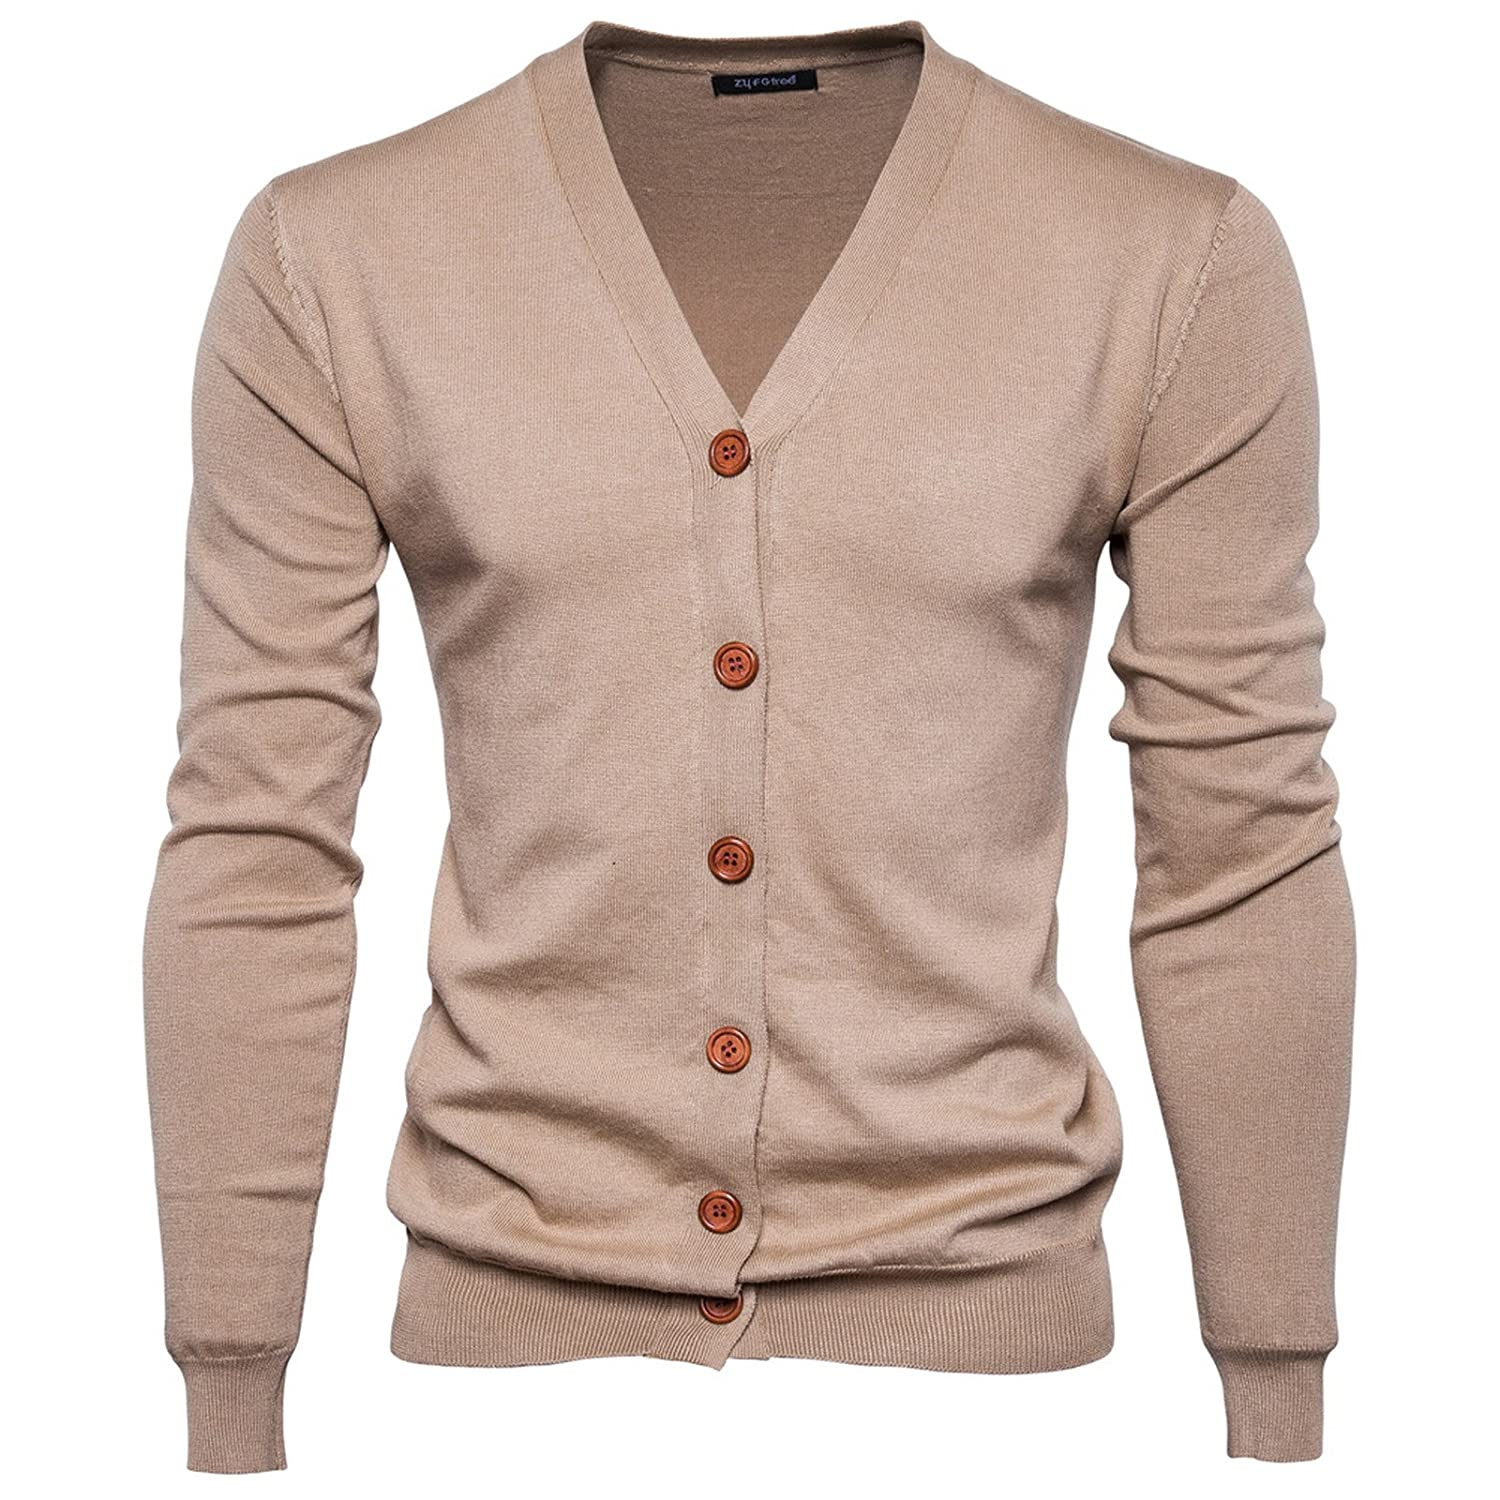 WSLCN Men's Cardigan Basic Sweater Knitted Jumper V-neck Jacket AW-F117